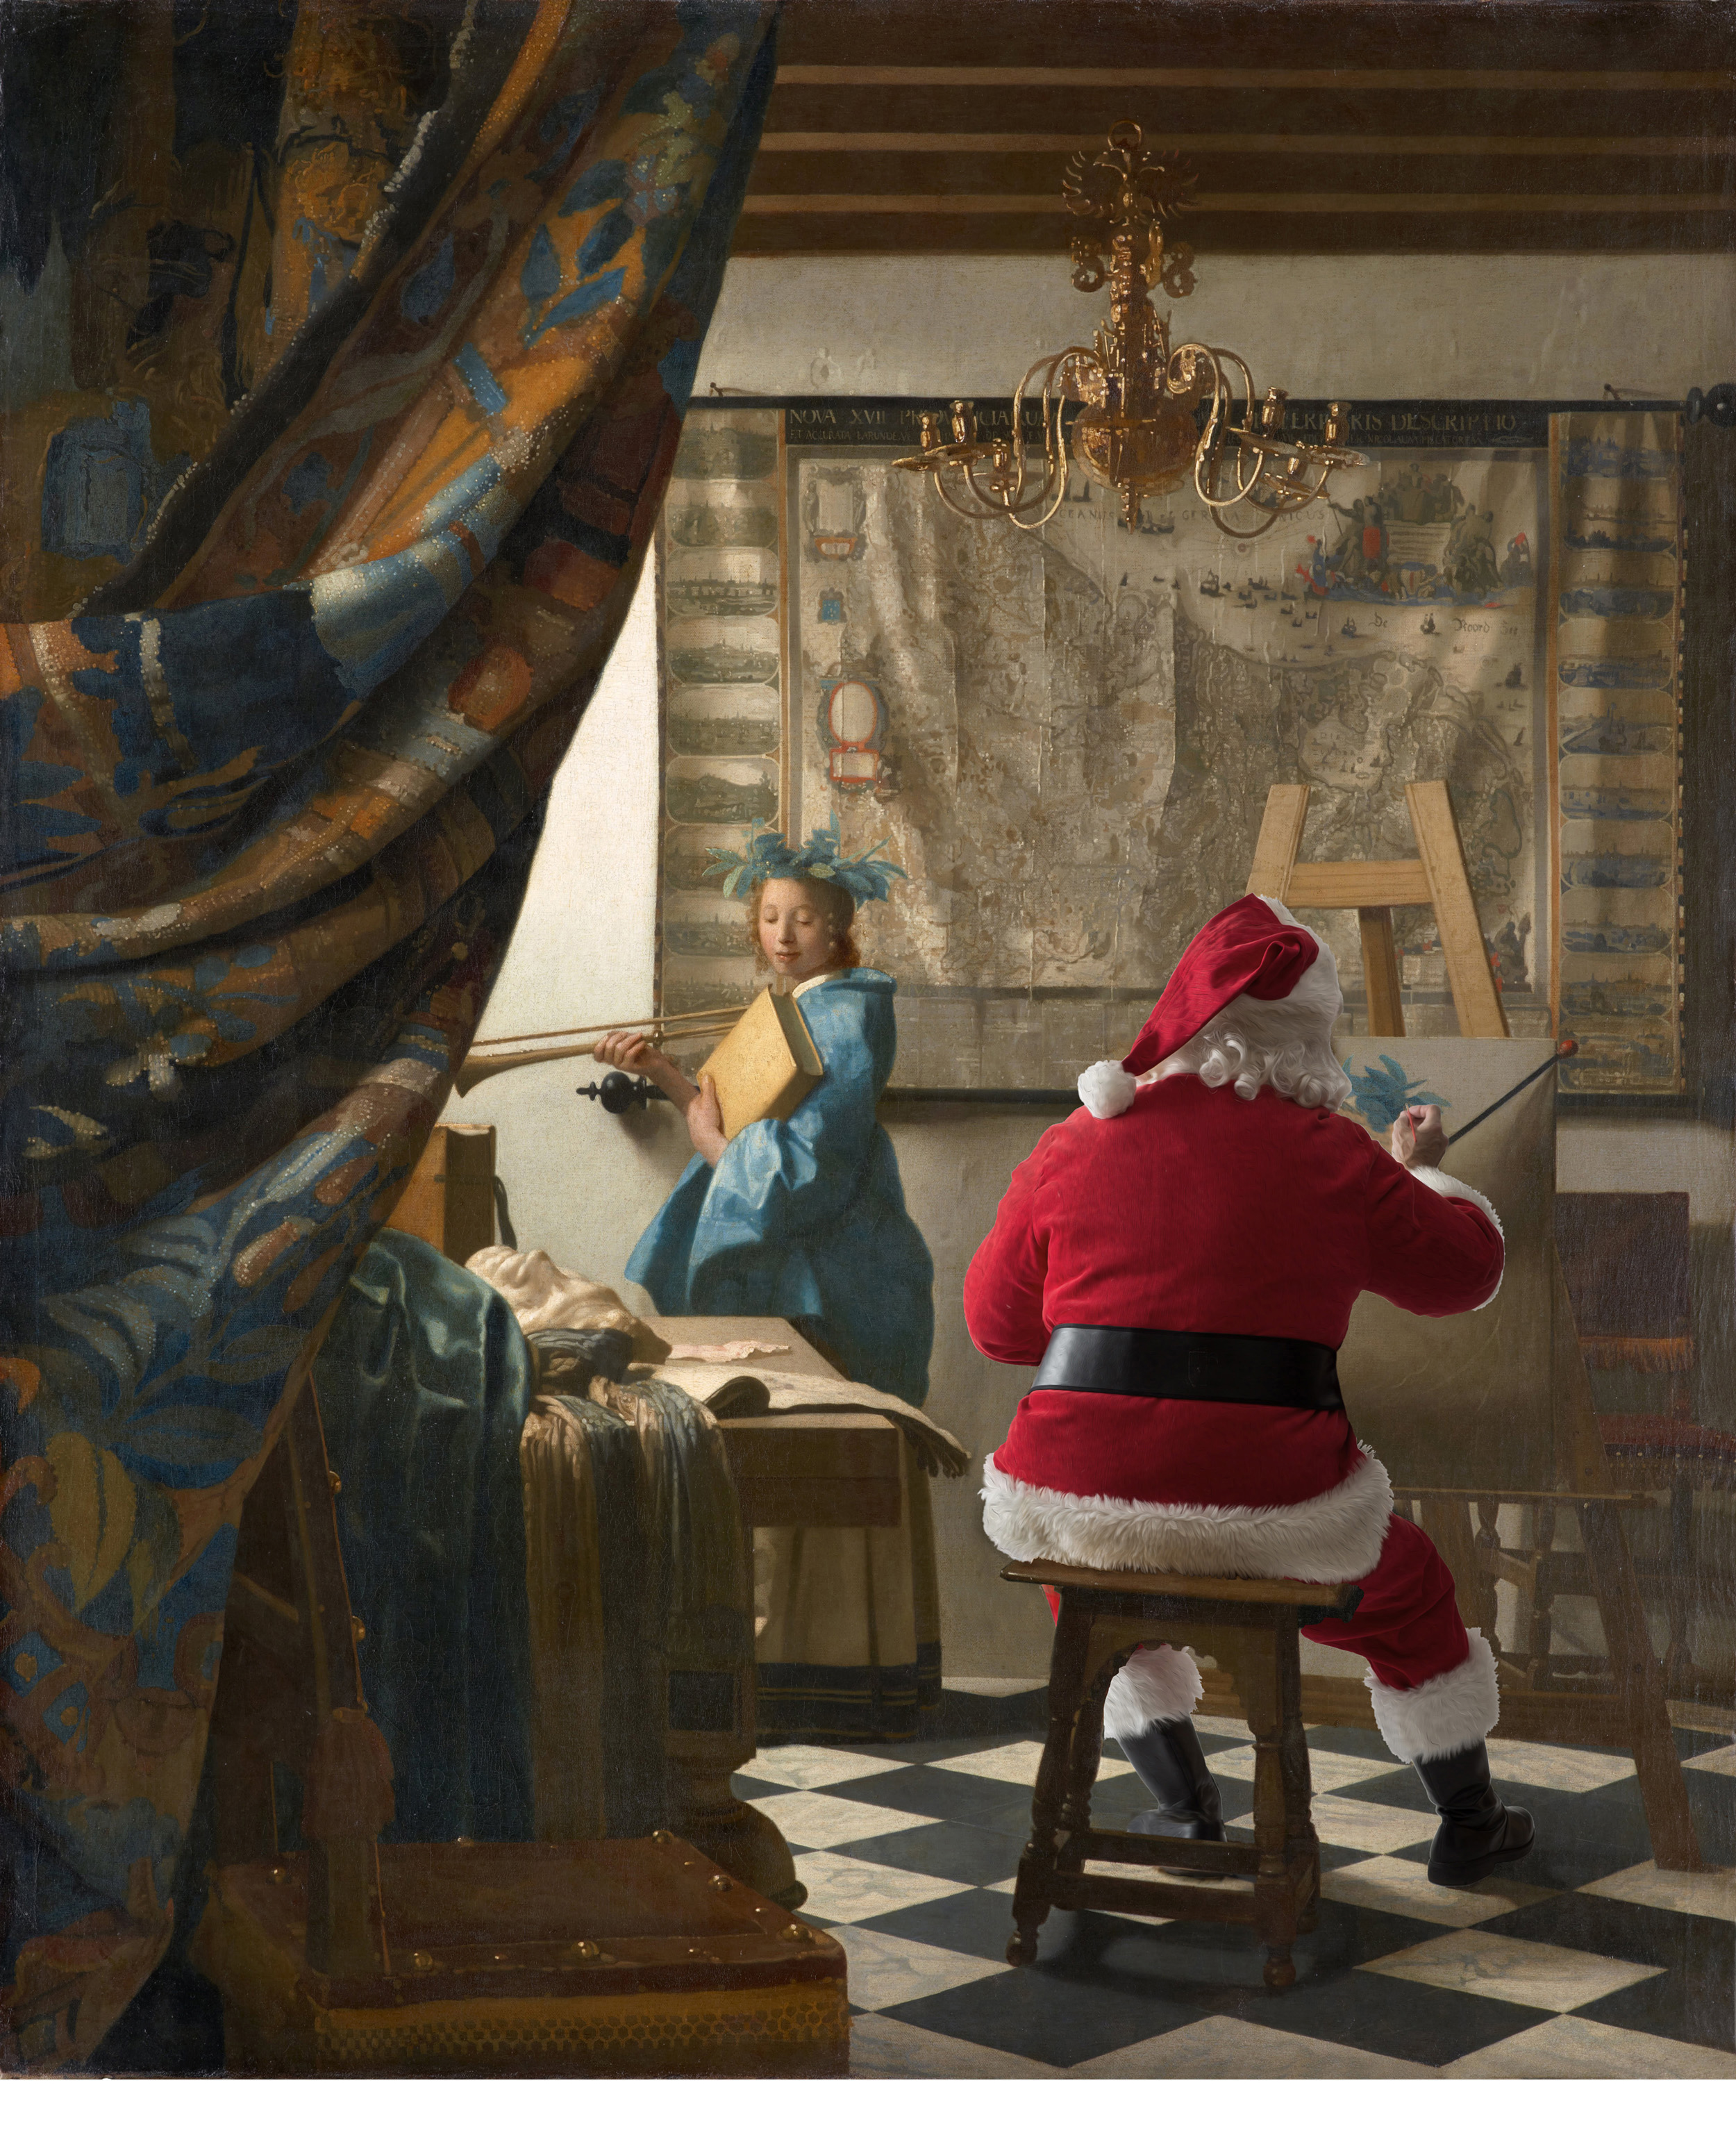 Johannes Vermeer - The Art of Painting